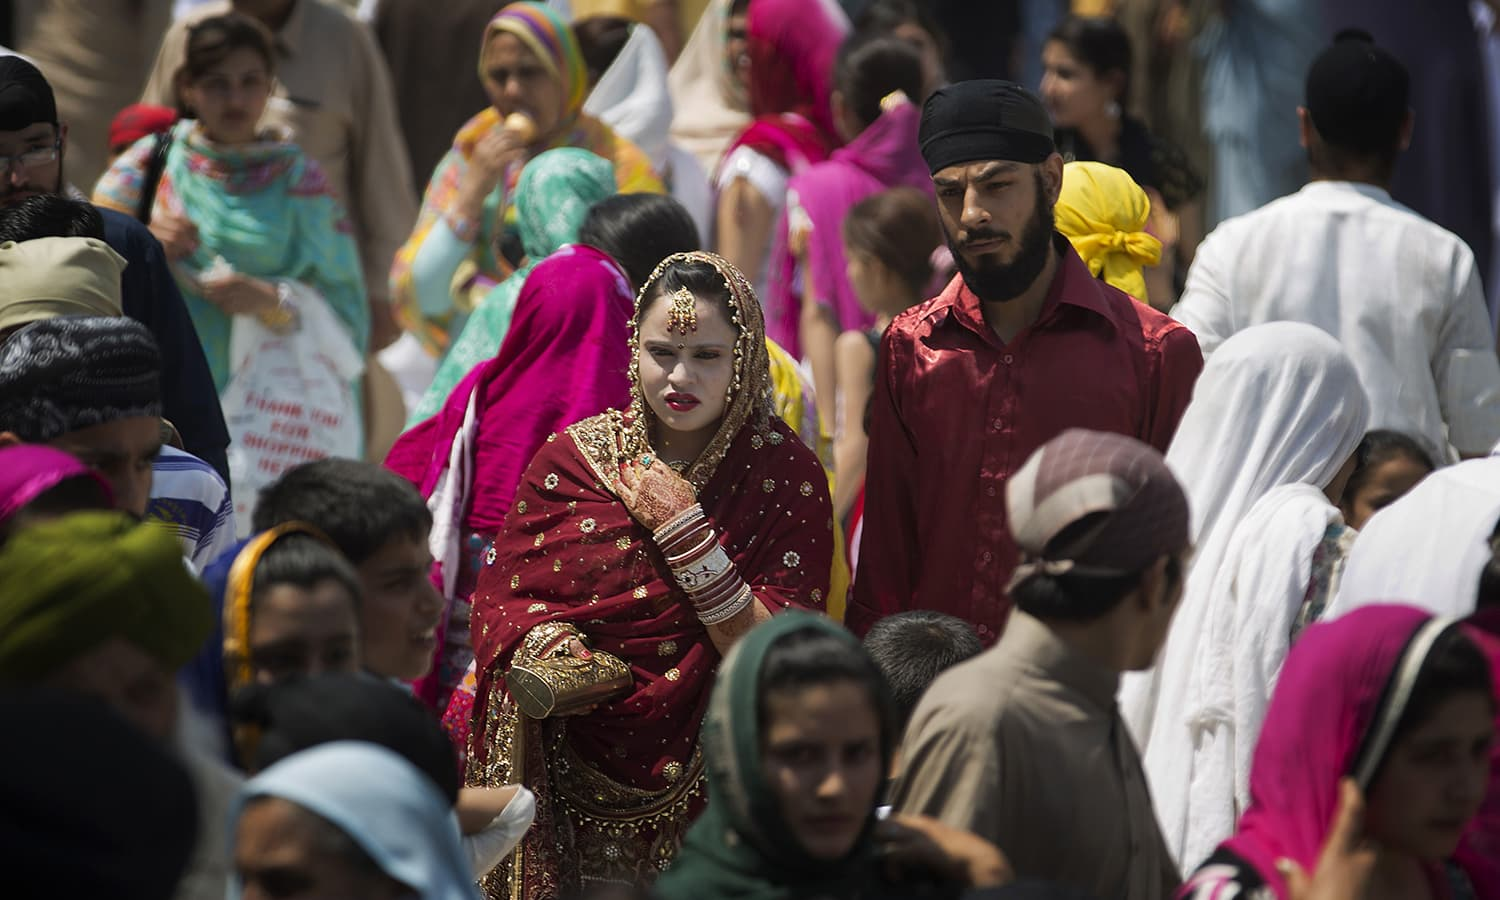 Pilgrims attend a religious festival at Panja Sahib shrine in Hasan Abdal.— AP